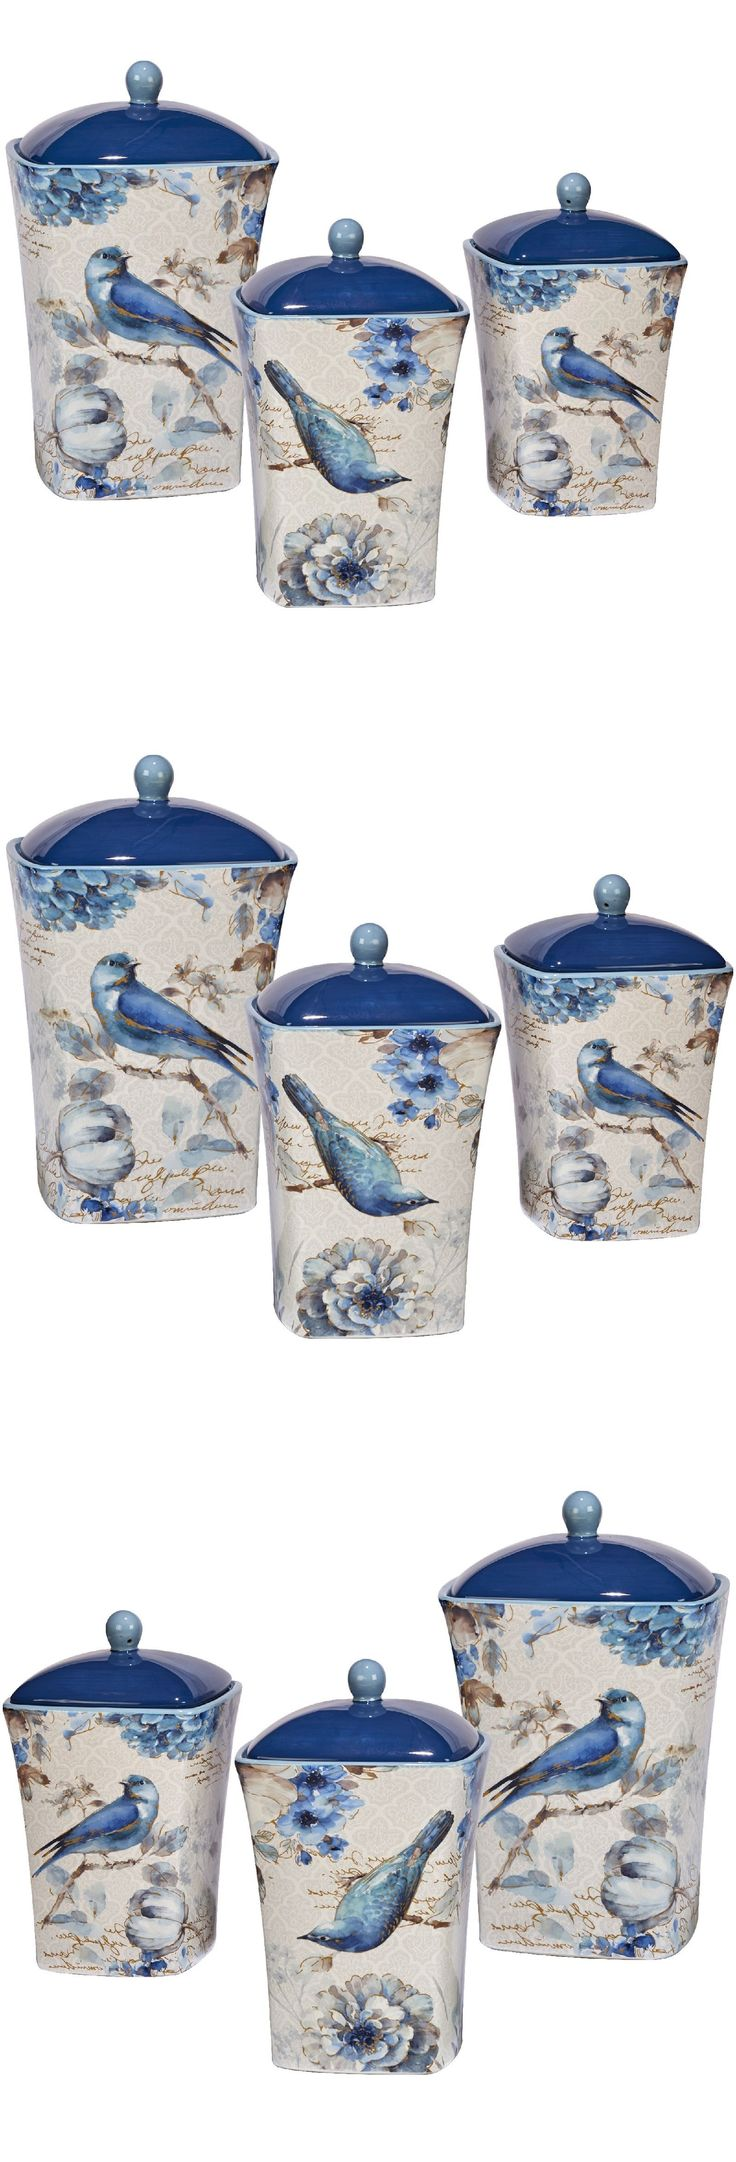 the 25 best ceramic canister set ideas on pinterest canisters canisters and jars 20654 kitchen canister jar set bluebird and floral ceramic hand painted bird